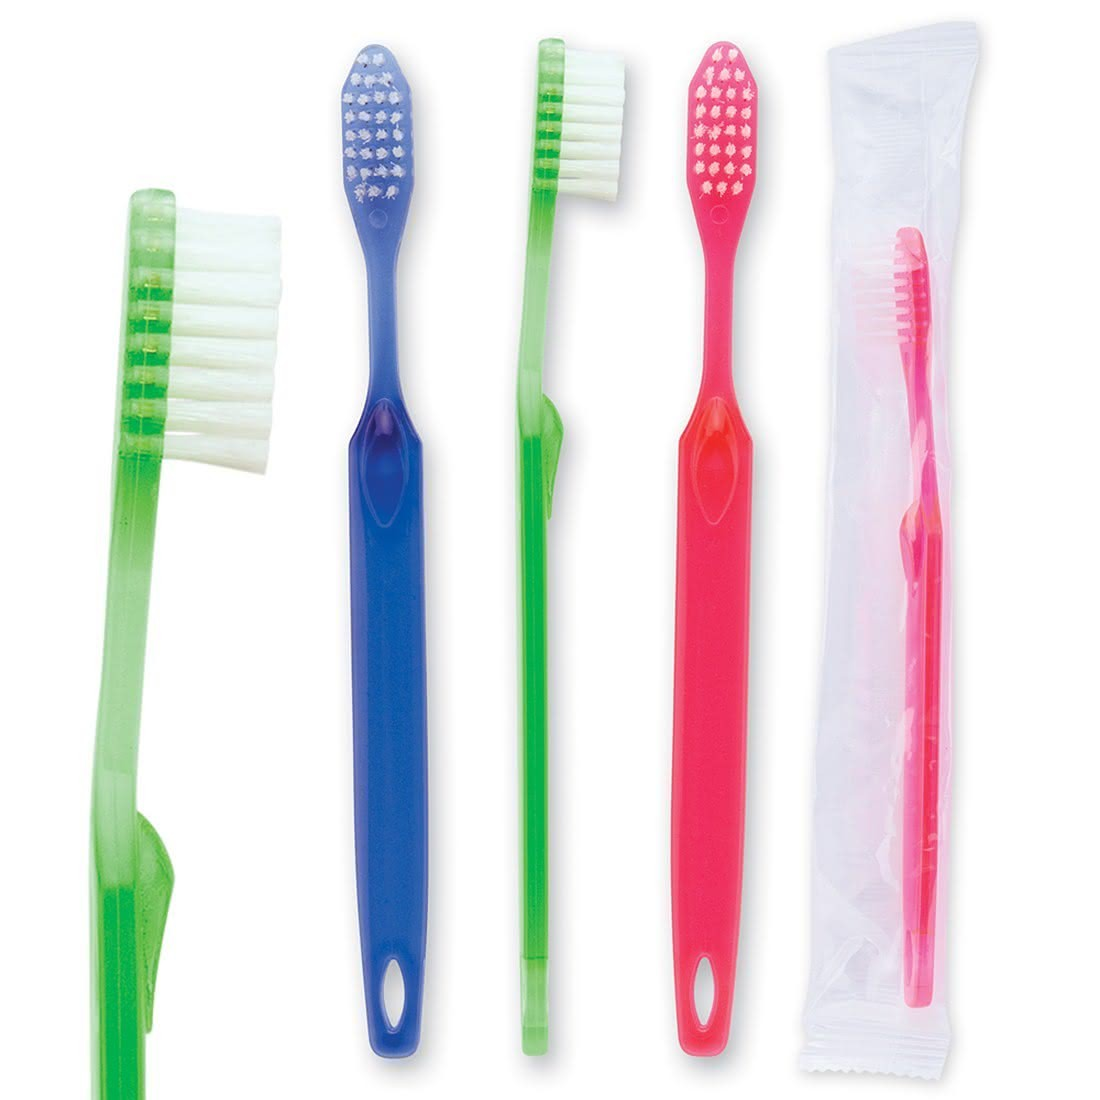 SmileCare Standard Youth Toothbrushes [image]